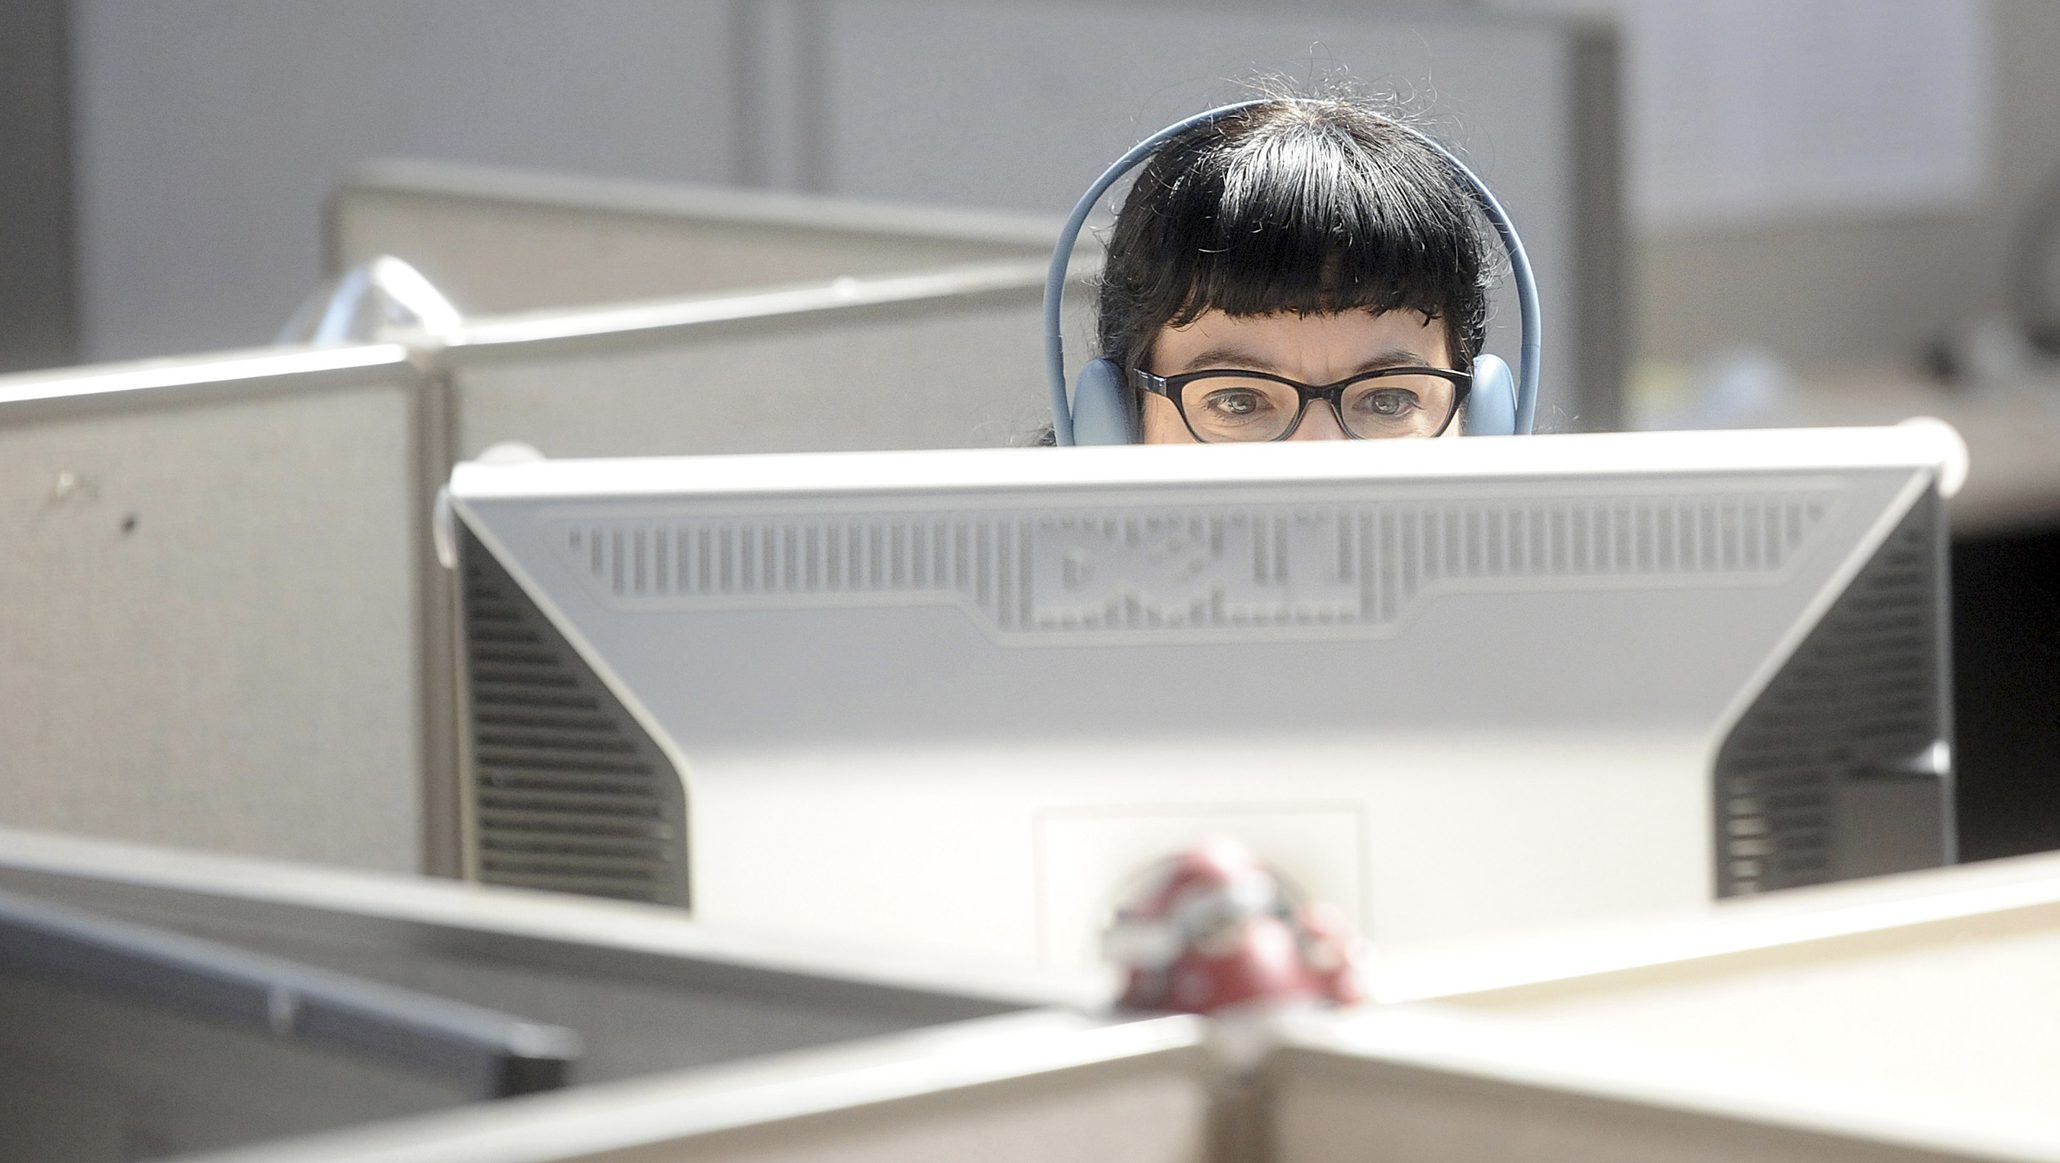 A woman is at her desk partially hidden behind her monitor